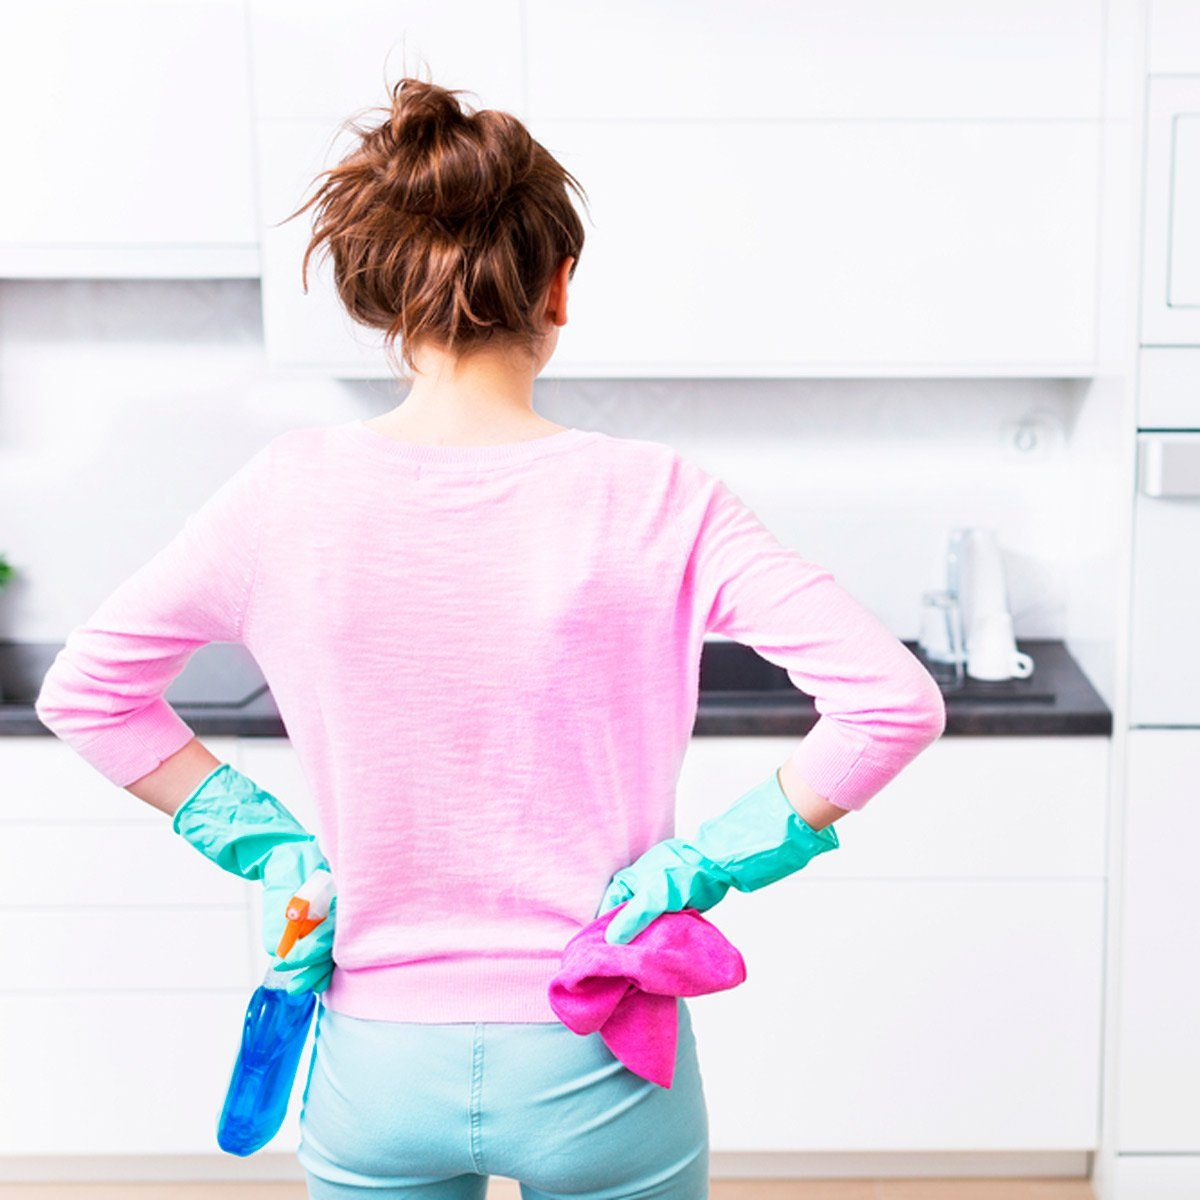 Woman with hands on her hips ready to tackle the kitchen